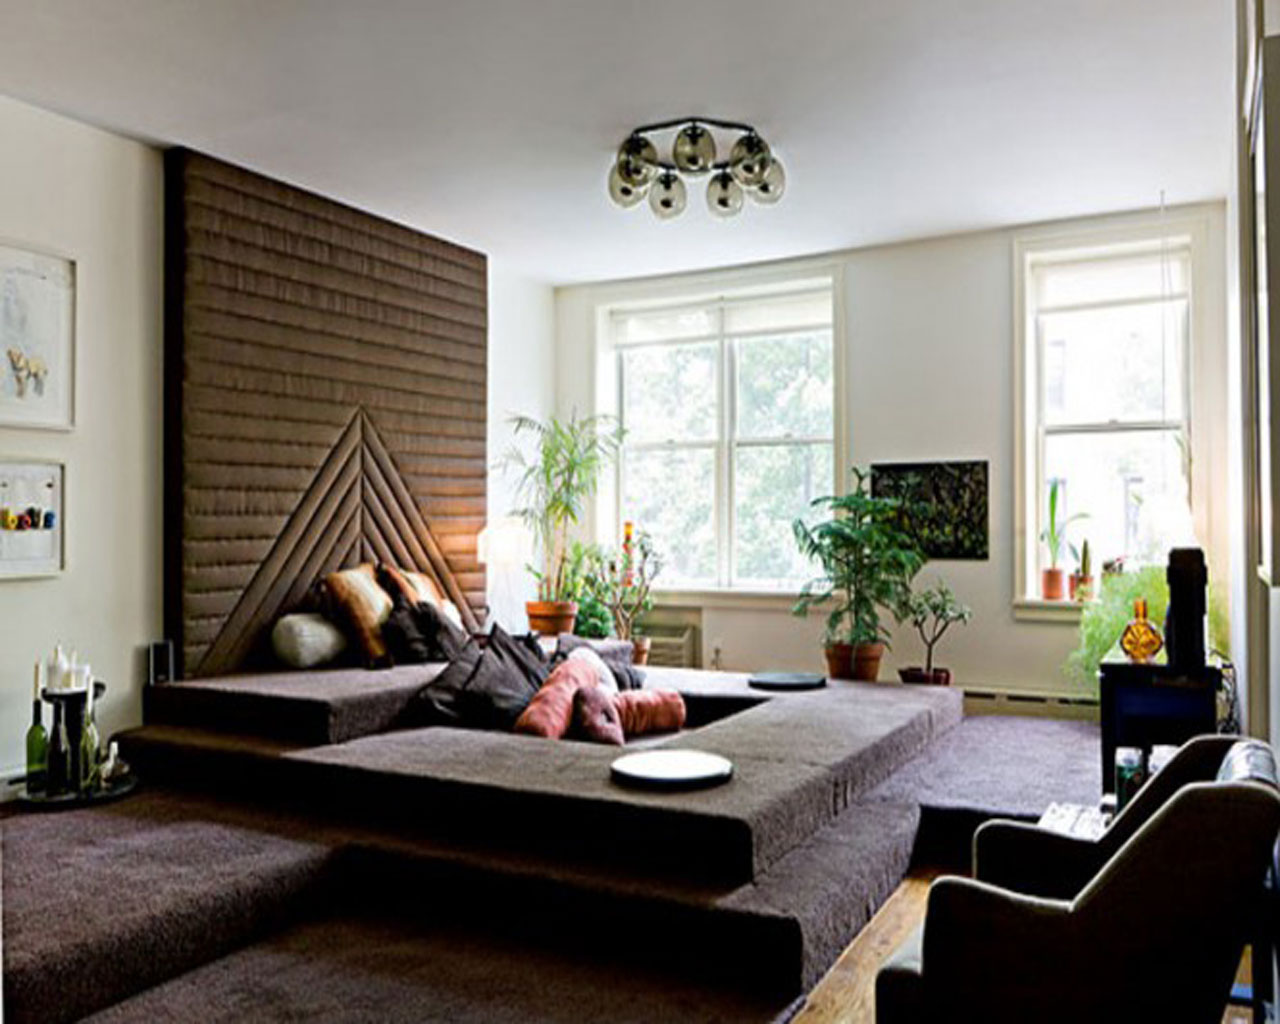 How To Decorate Oblong Living Room And Dining Colors Home Interior Designs: Design Ideas & Tips